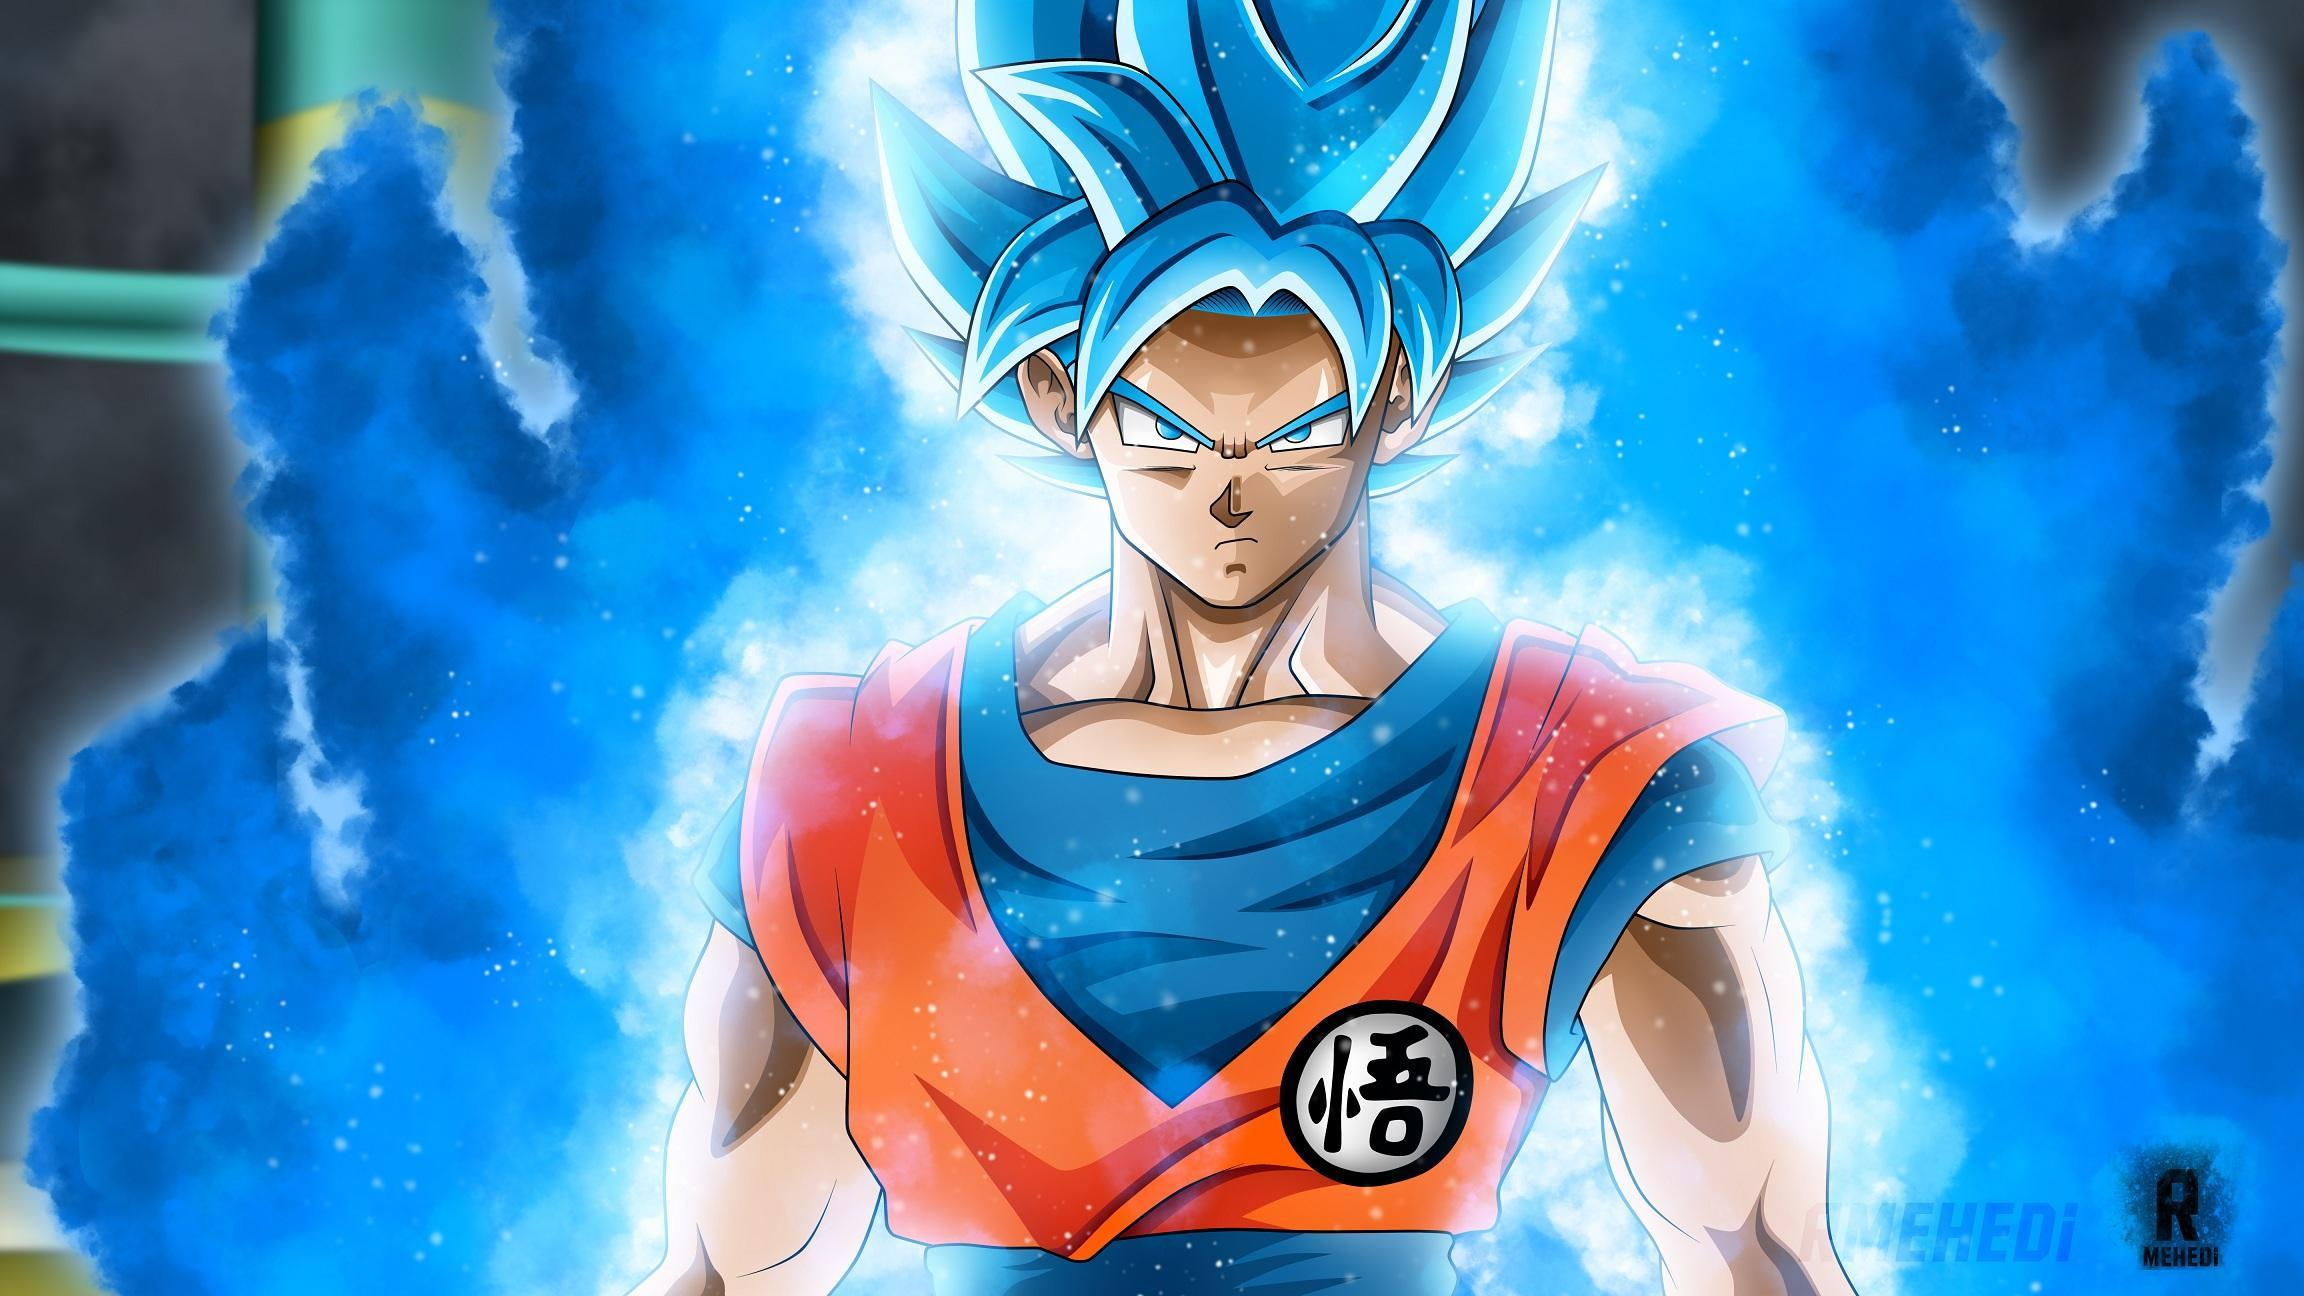 Goku Wallpaper Hd For Android Apk Download